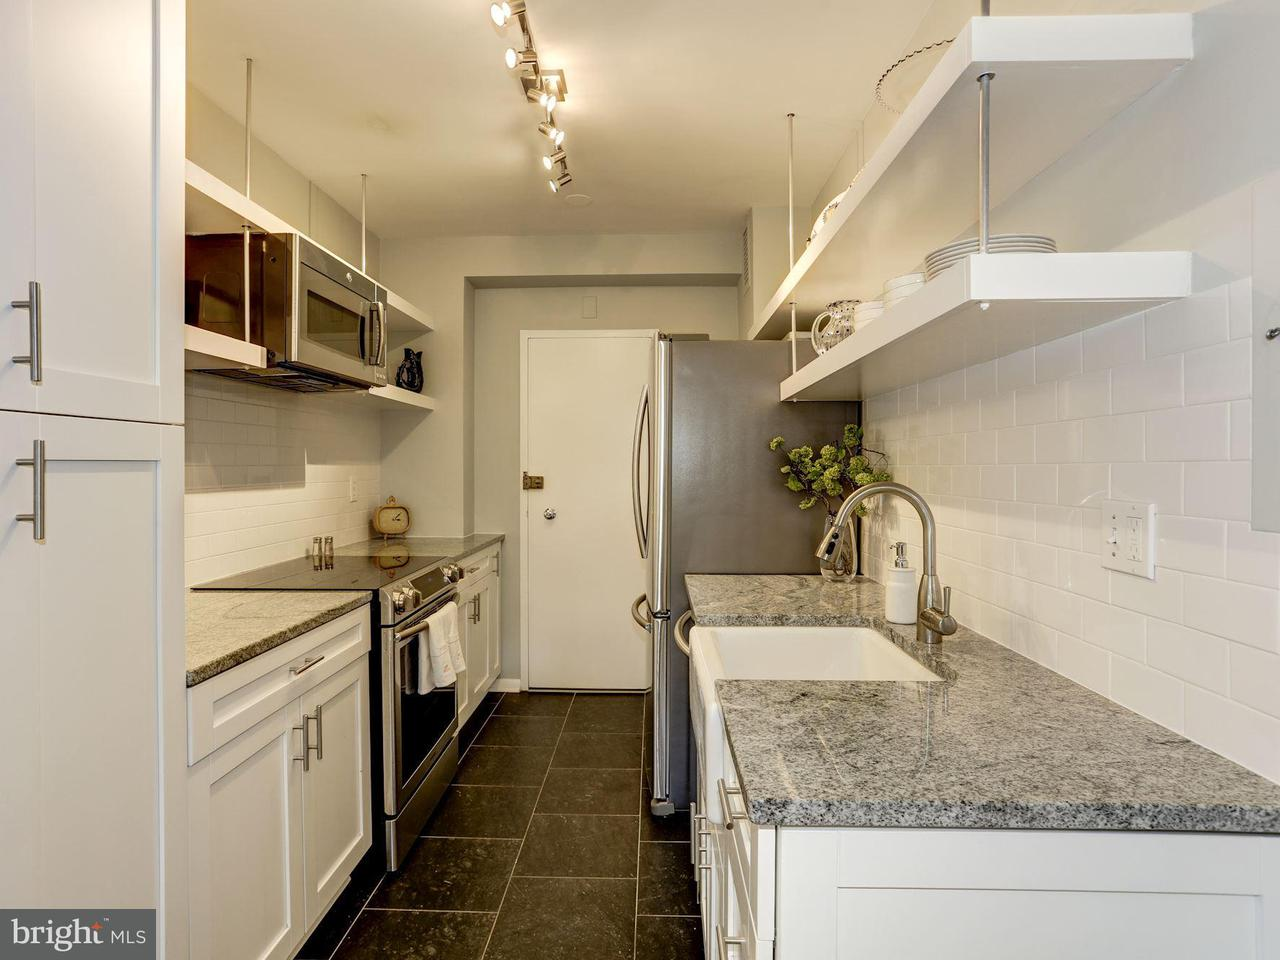 Additional photo for property listing at 3900 Watson Pl Nw #B-3e 3900 Watson Pl Nw #B-3e Washington, District Of Columbia 20016 United States